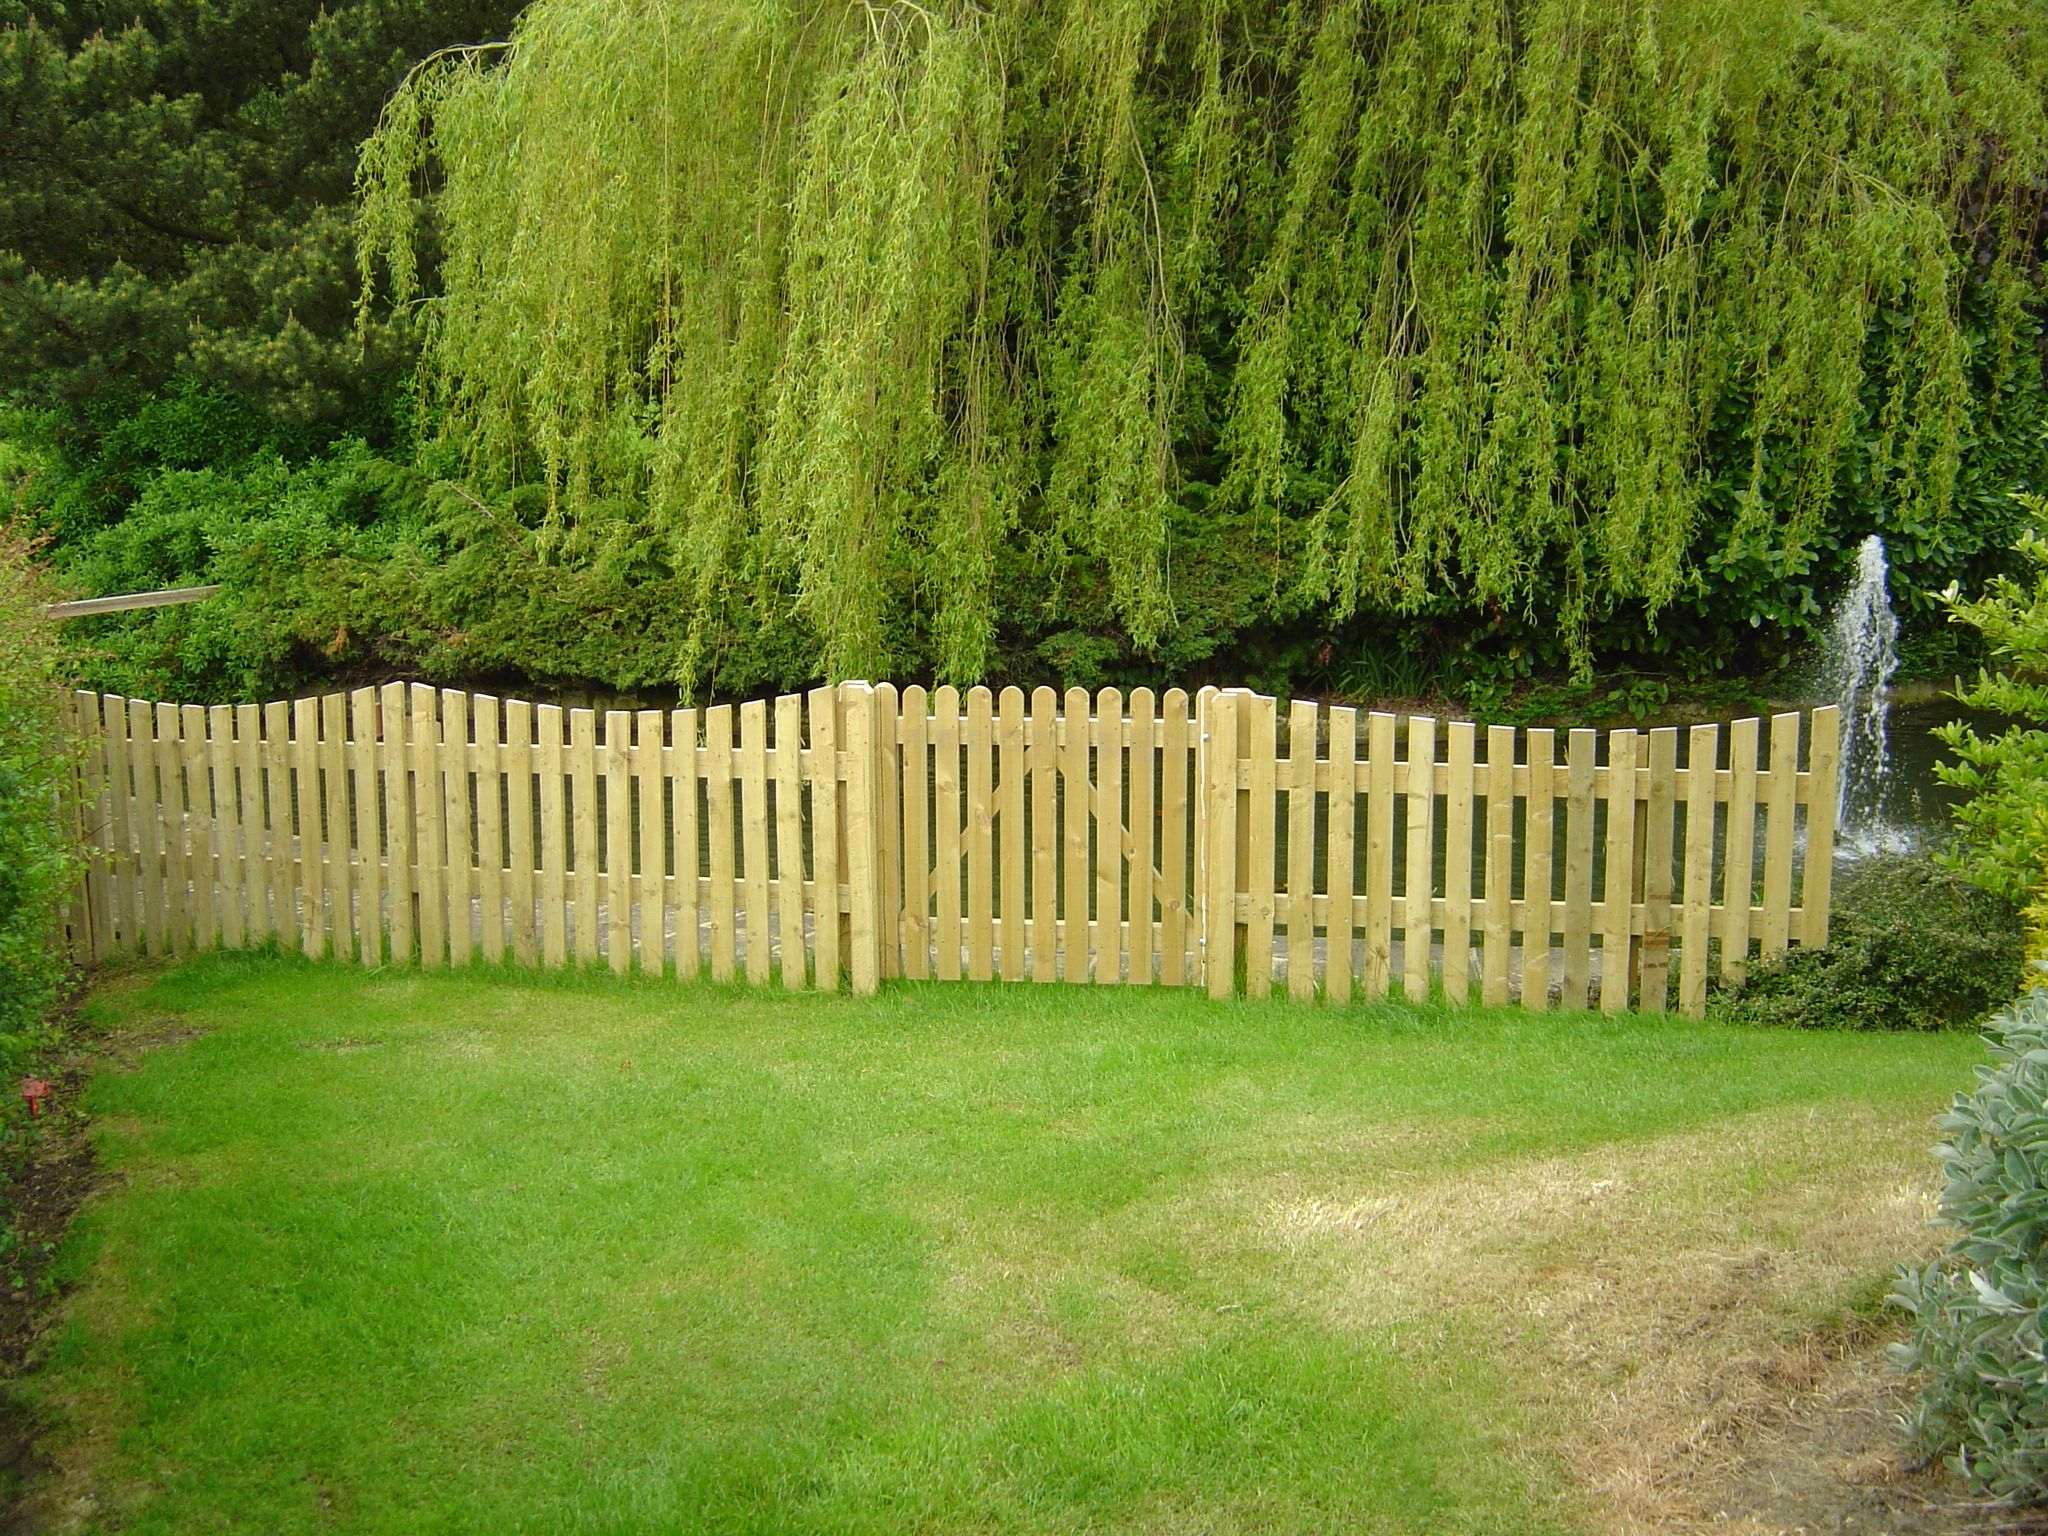 Small Garden Fence Ideas backyard fences ideas backyard fence ideas elegant backyard wood fence ideas garden design garden design with 10 Garden Fence Ideas That Truly Creative Inspiring And Low Cost